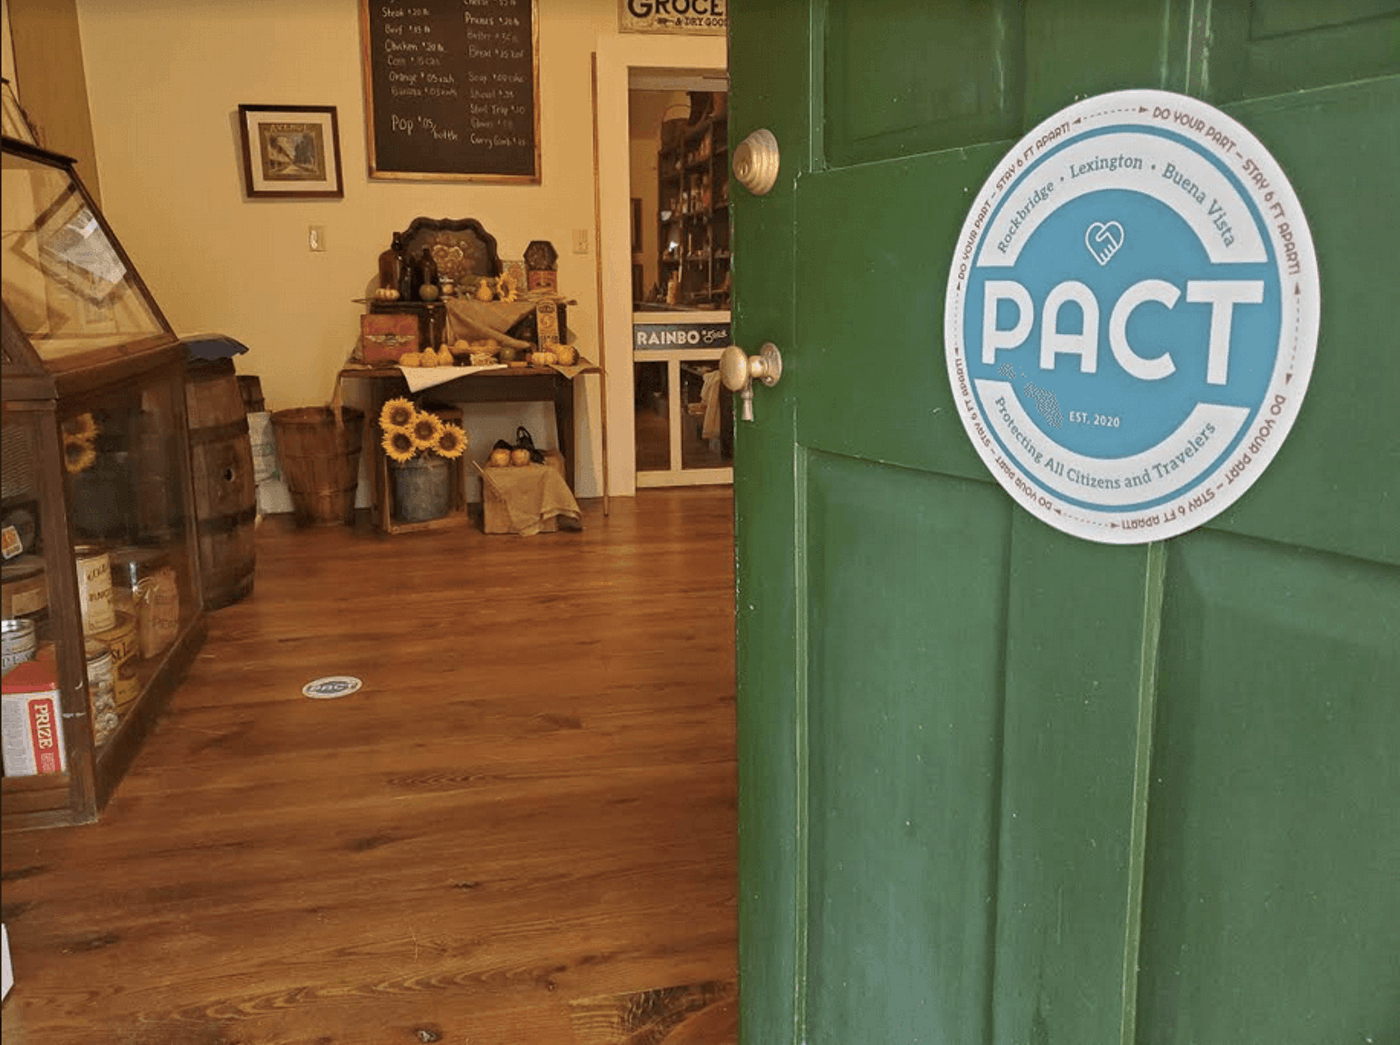 Protecting All Citizens and Travelers (PACT) signs designate businesses that promise to follow Forward Virginia guidelines.  Contributed photo.